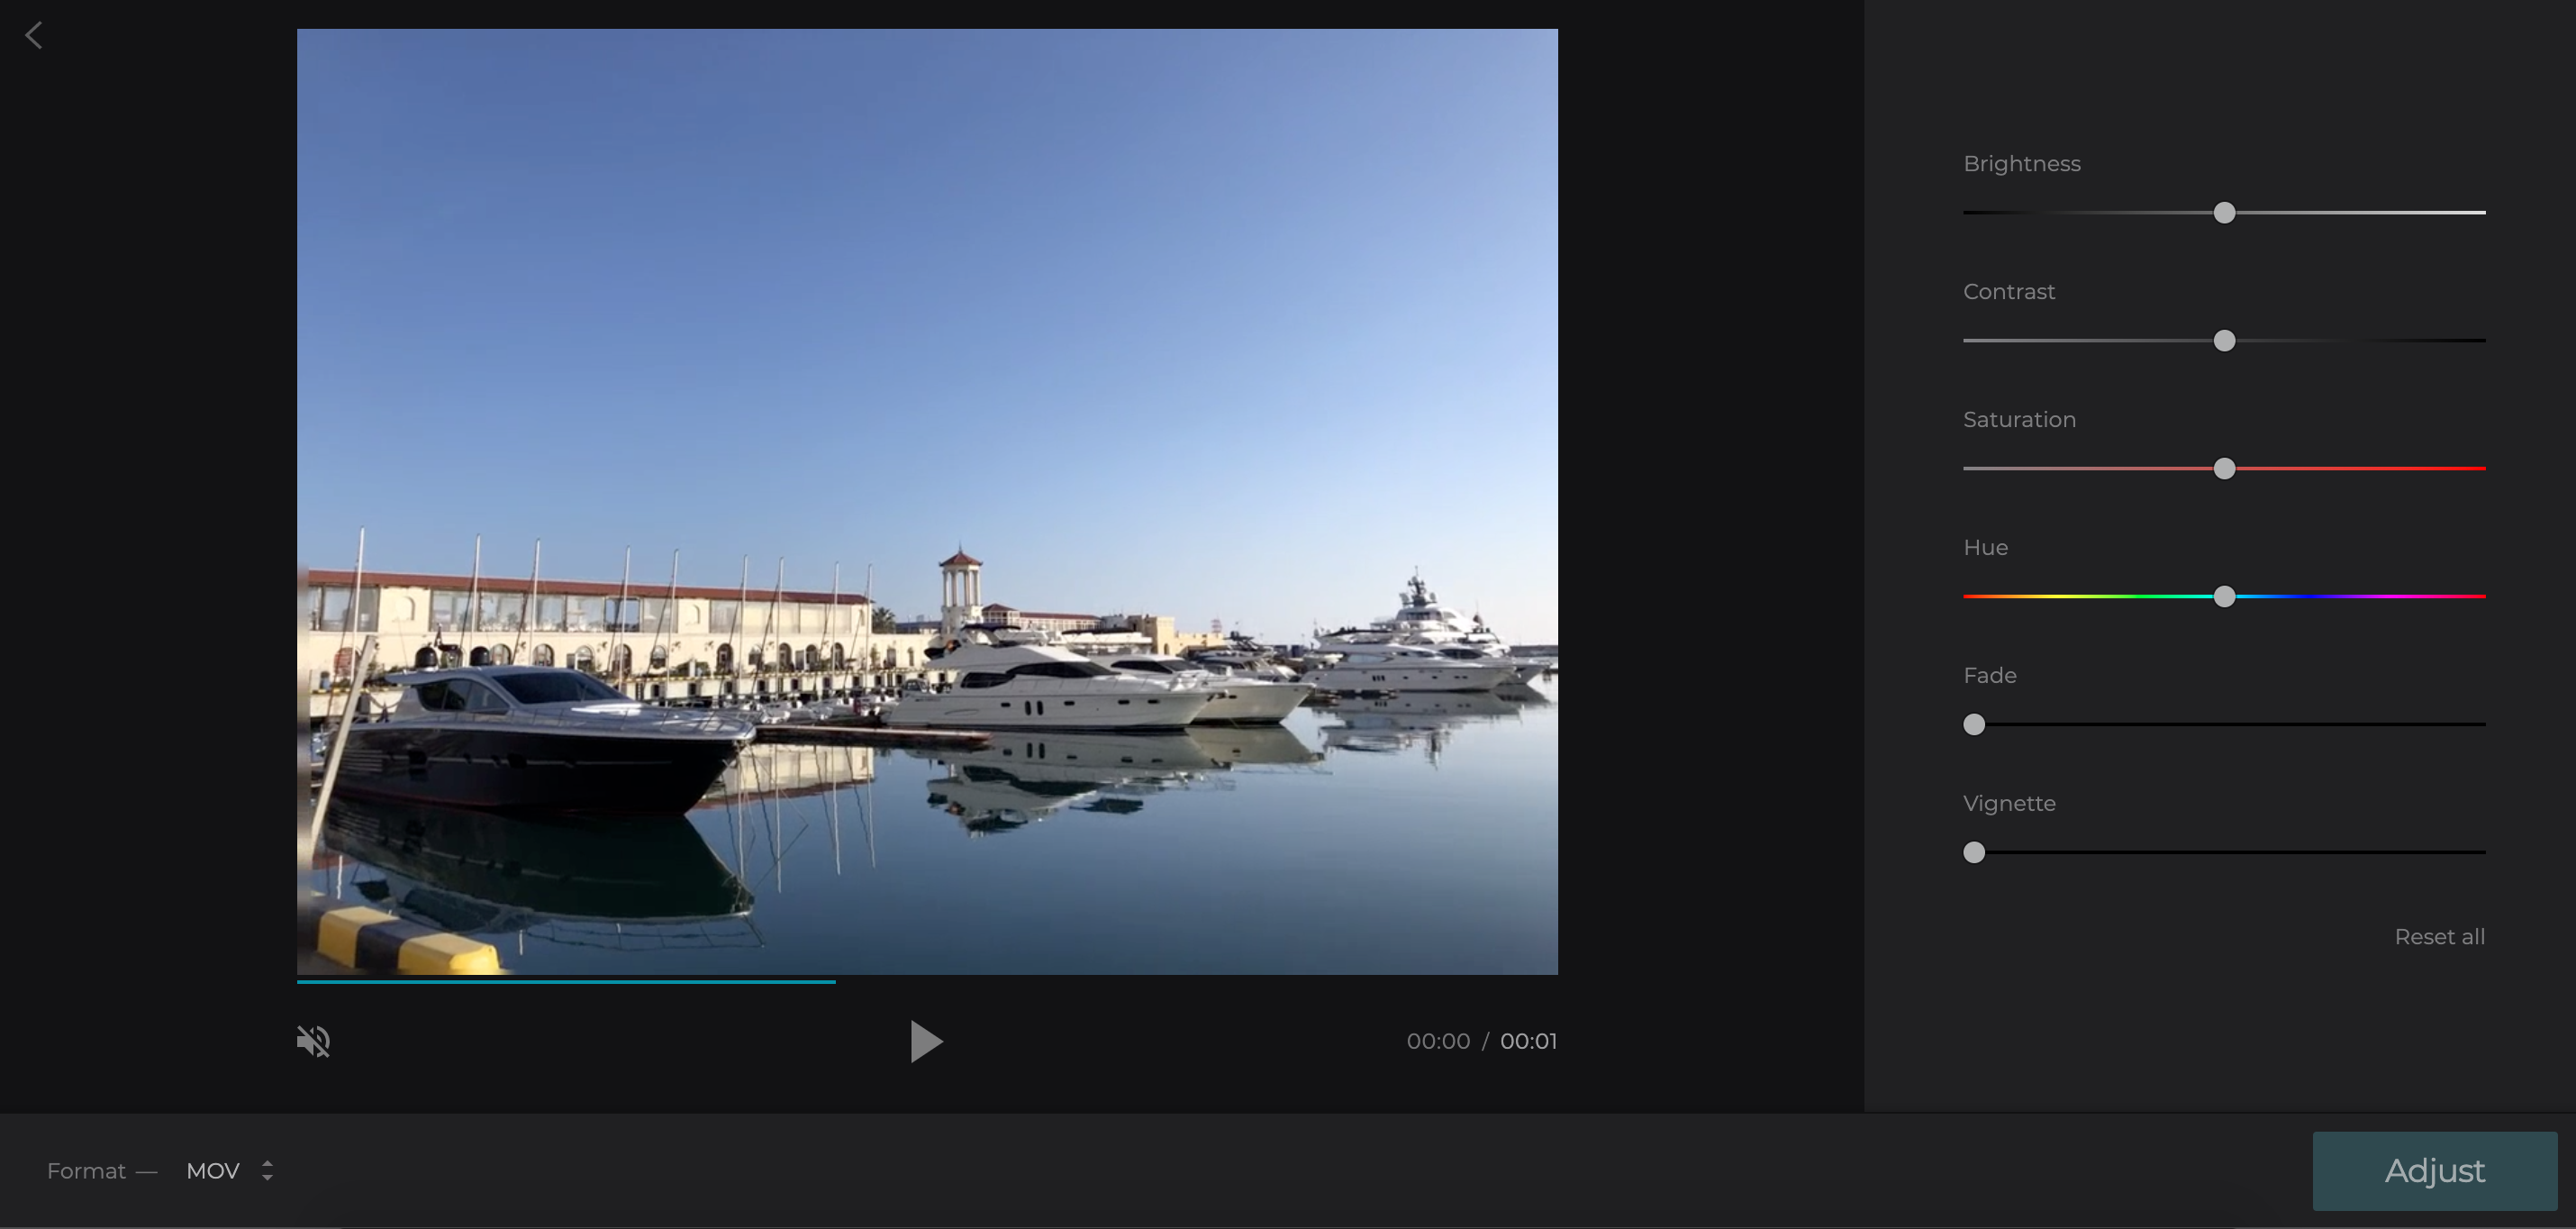 Adjust the settings of the video in the enhancer